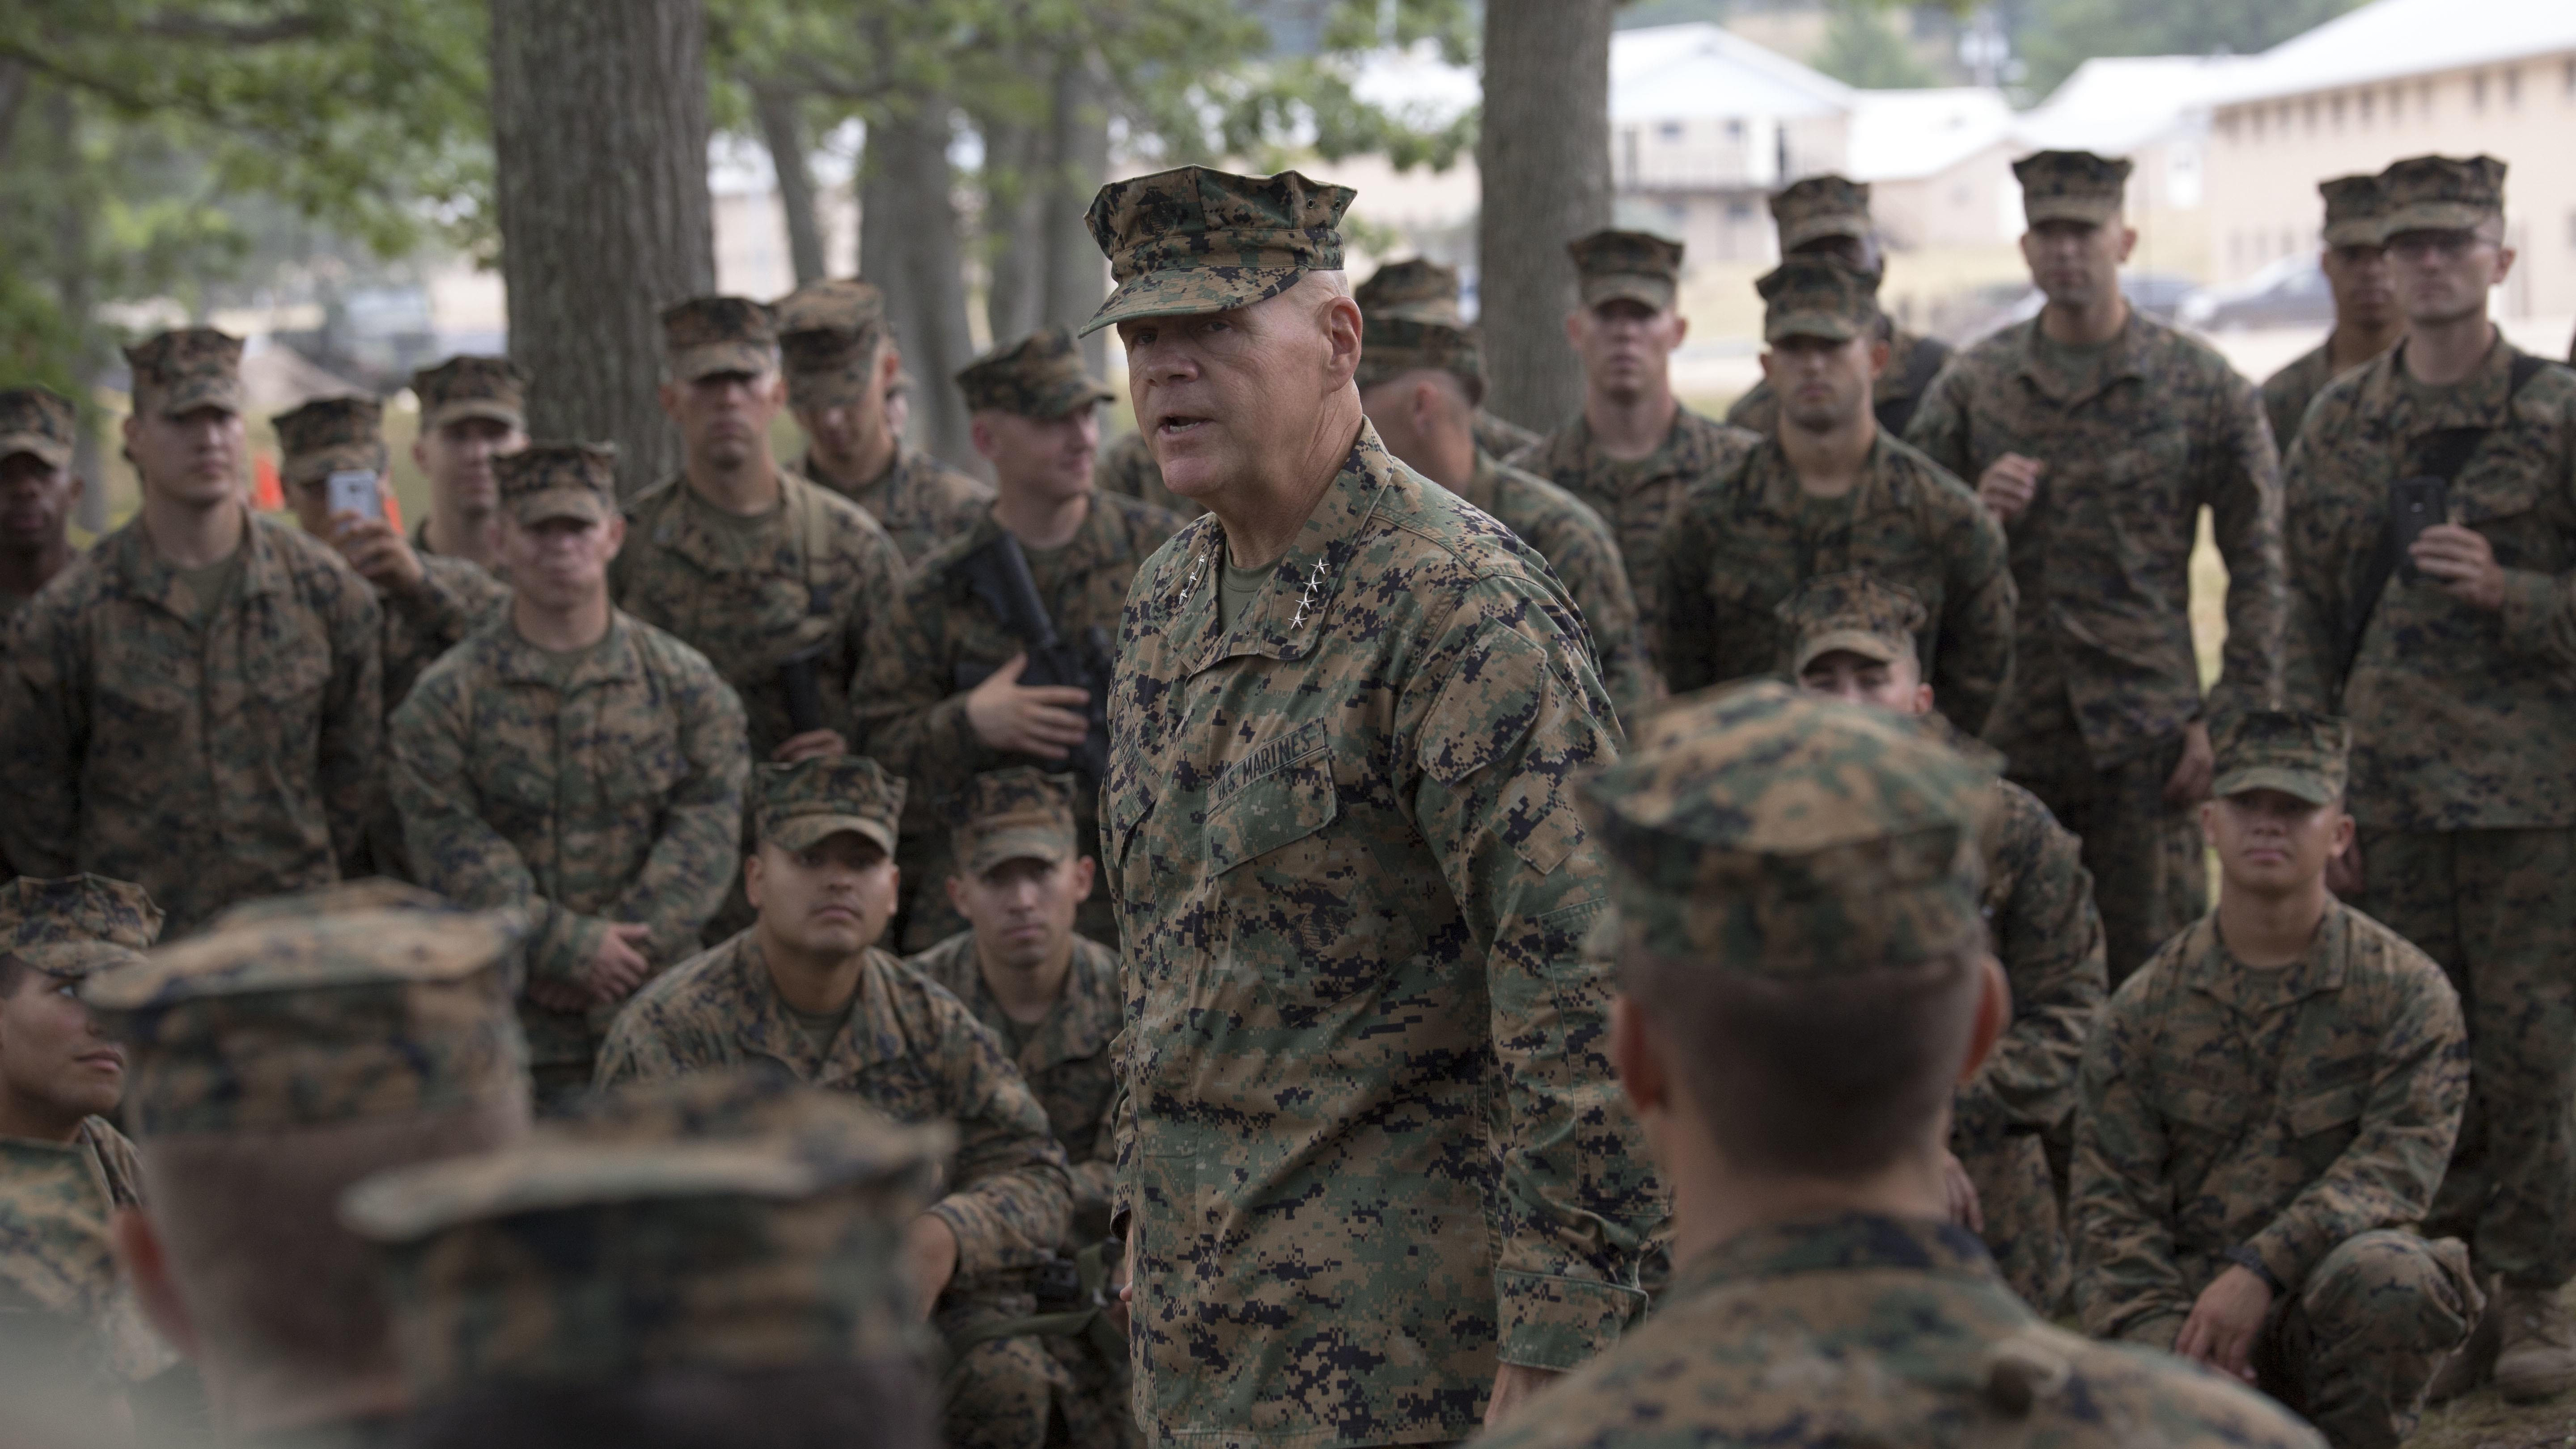 Marine Corps Commandant Gen. Robert Neller addresses Marines wearing the woodland MARPAT cammie uniform. (Photo from U.S. Marine Corps)